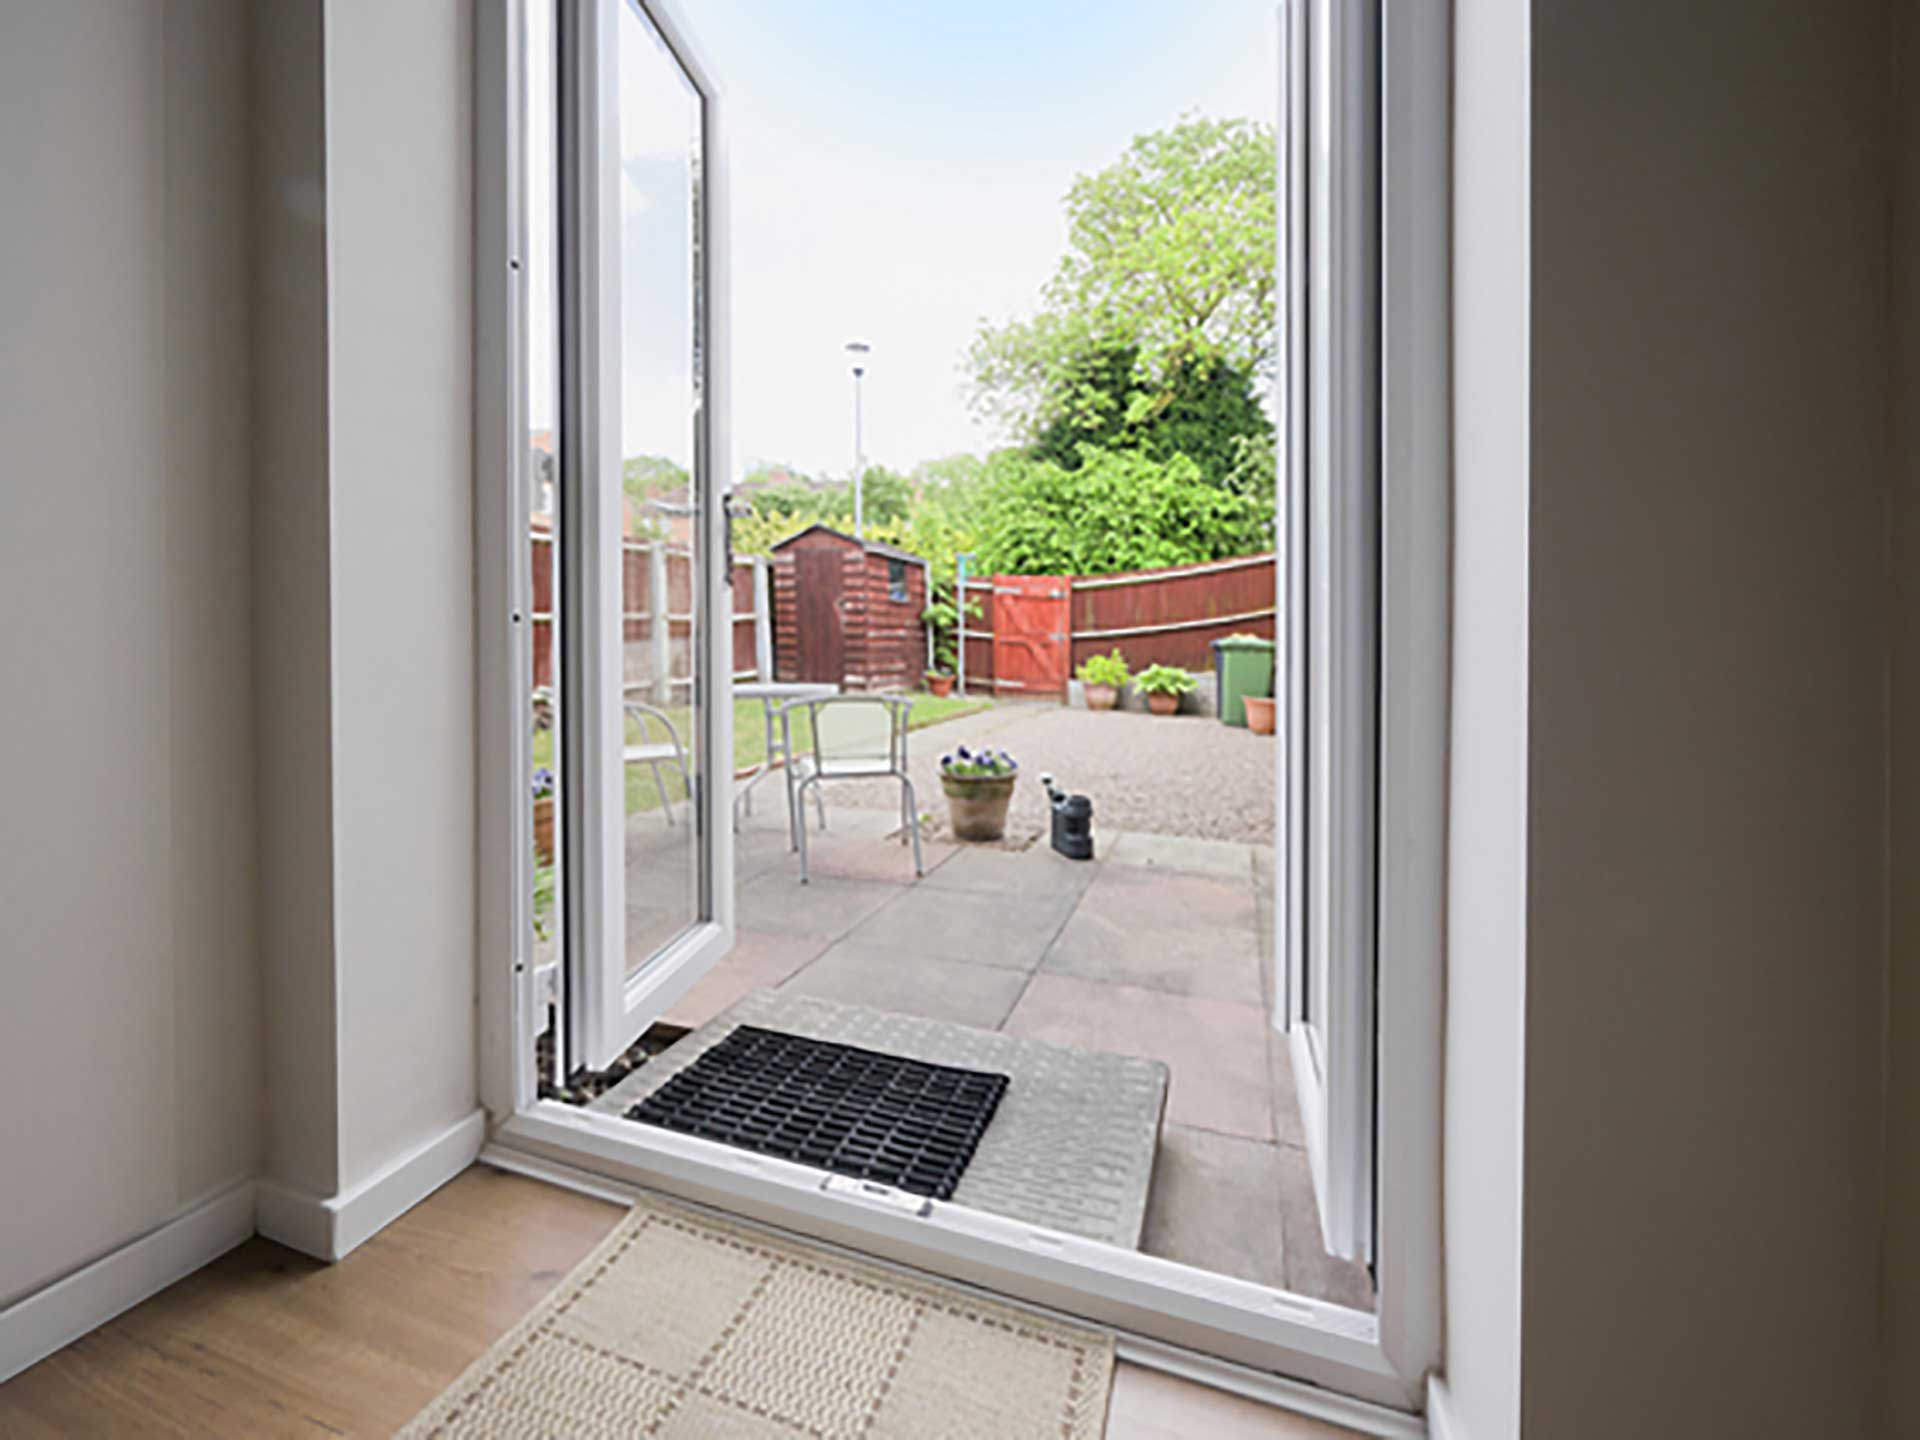 French Doors Garden Open bridgwater